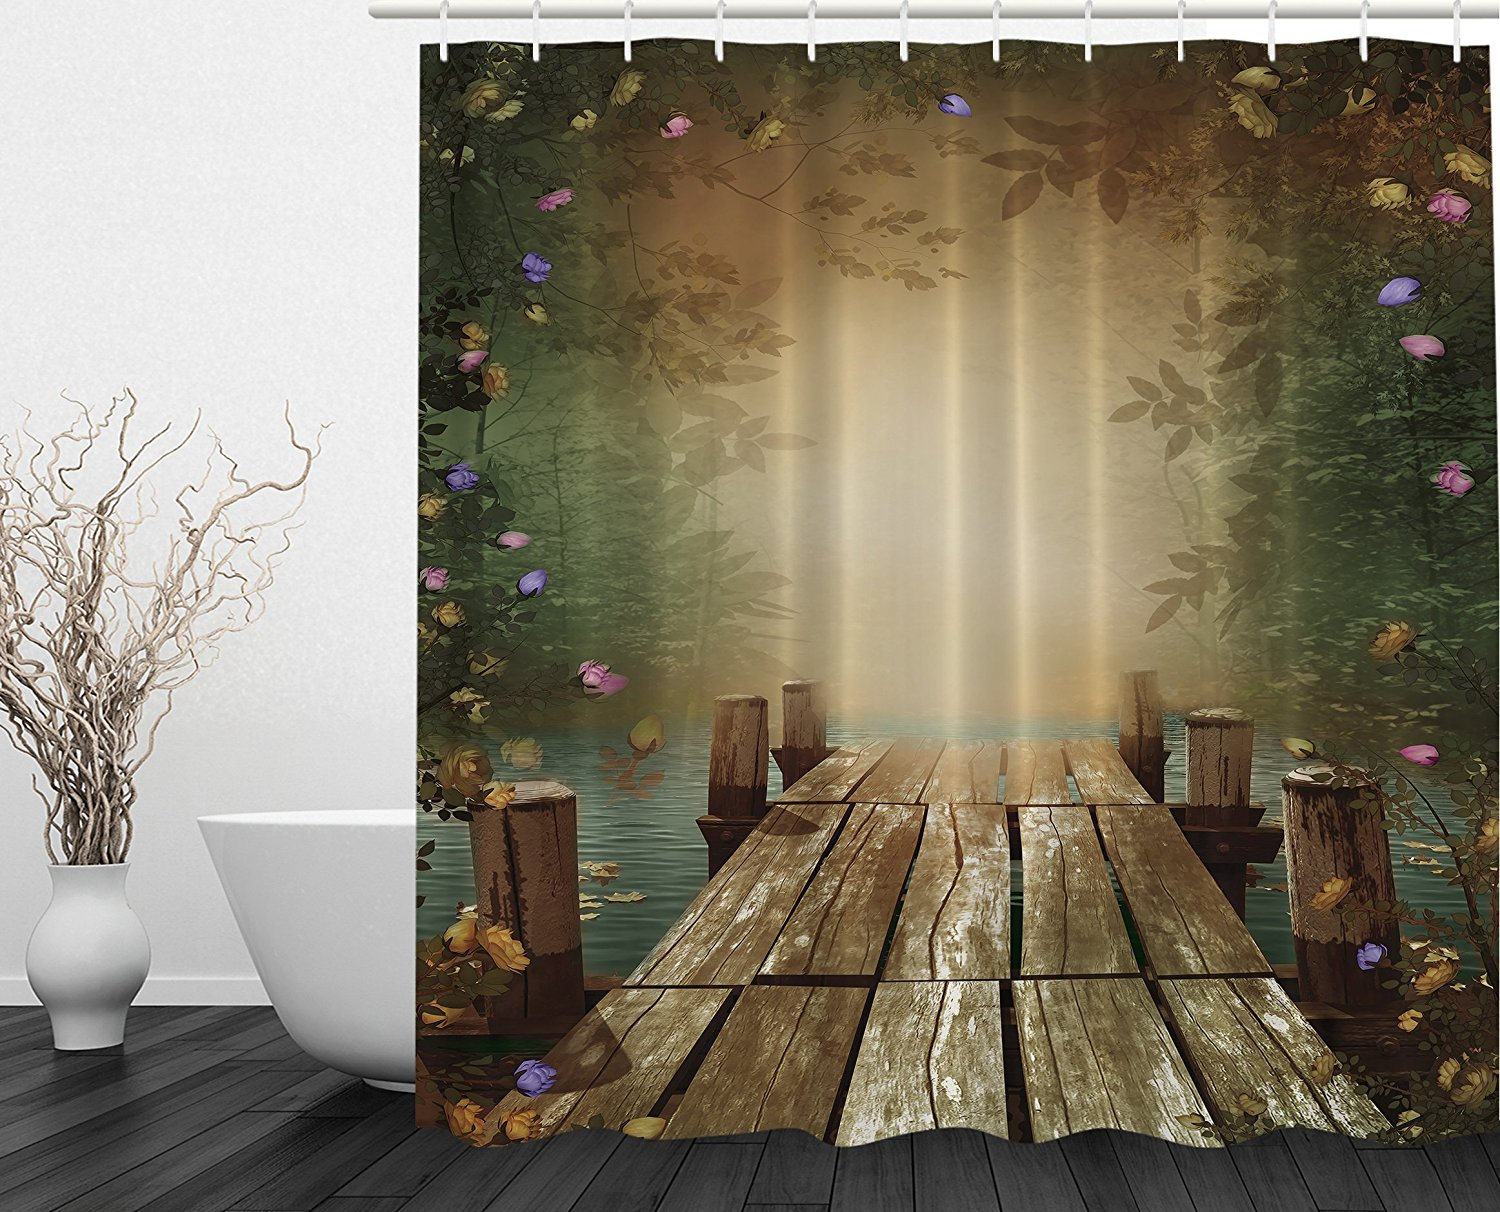 Romantic shower curtain - Going Away Gifts Fairy Tale Wooden Floating Dock Imaginary World Lilac Yellow Pink Roses Whimsical Romantic Shower Curtain